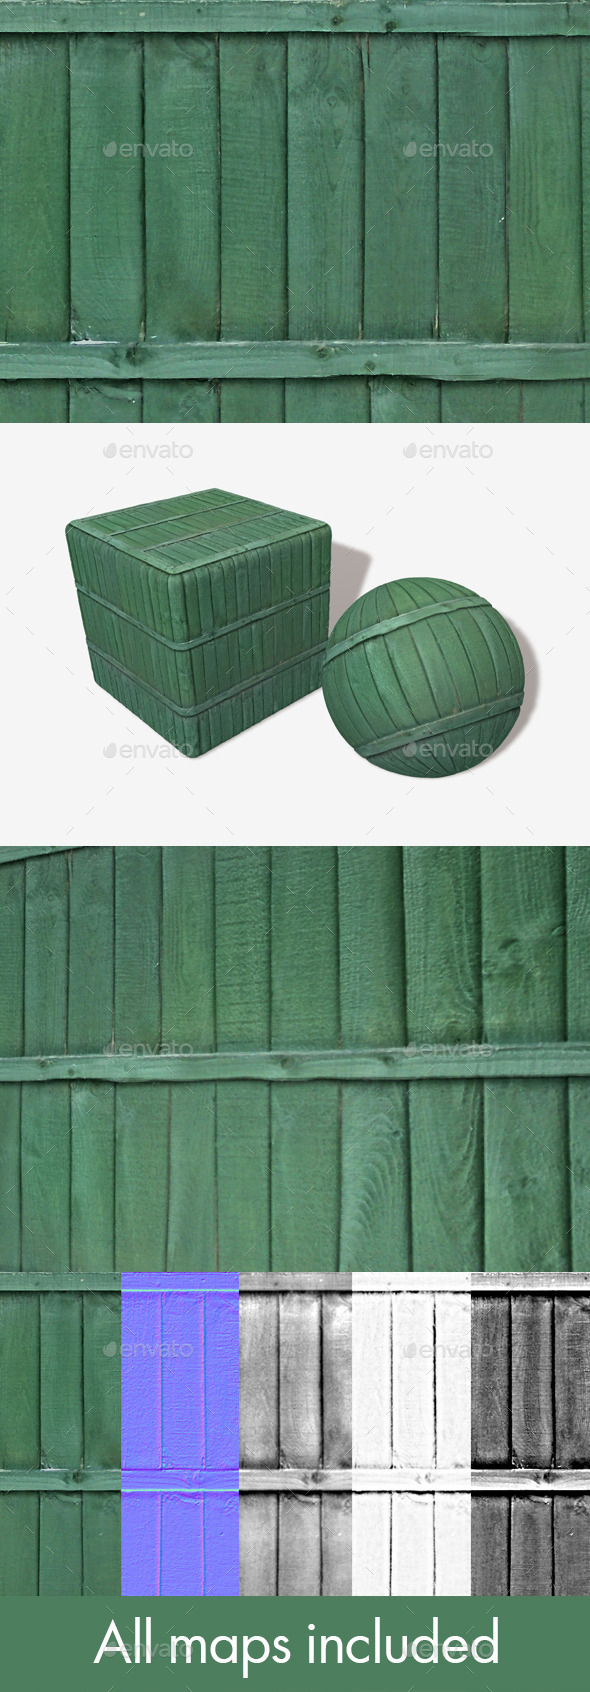 3DOcean Green Wooden Panels Seamless Texture 11765711